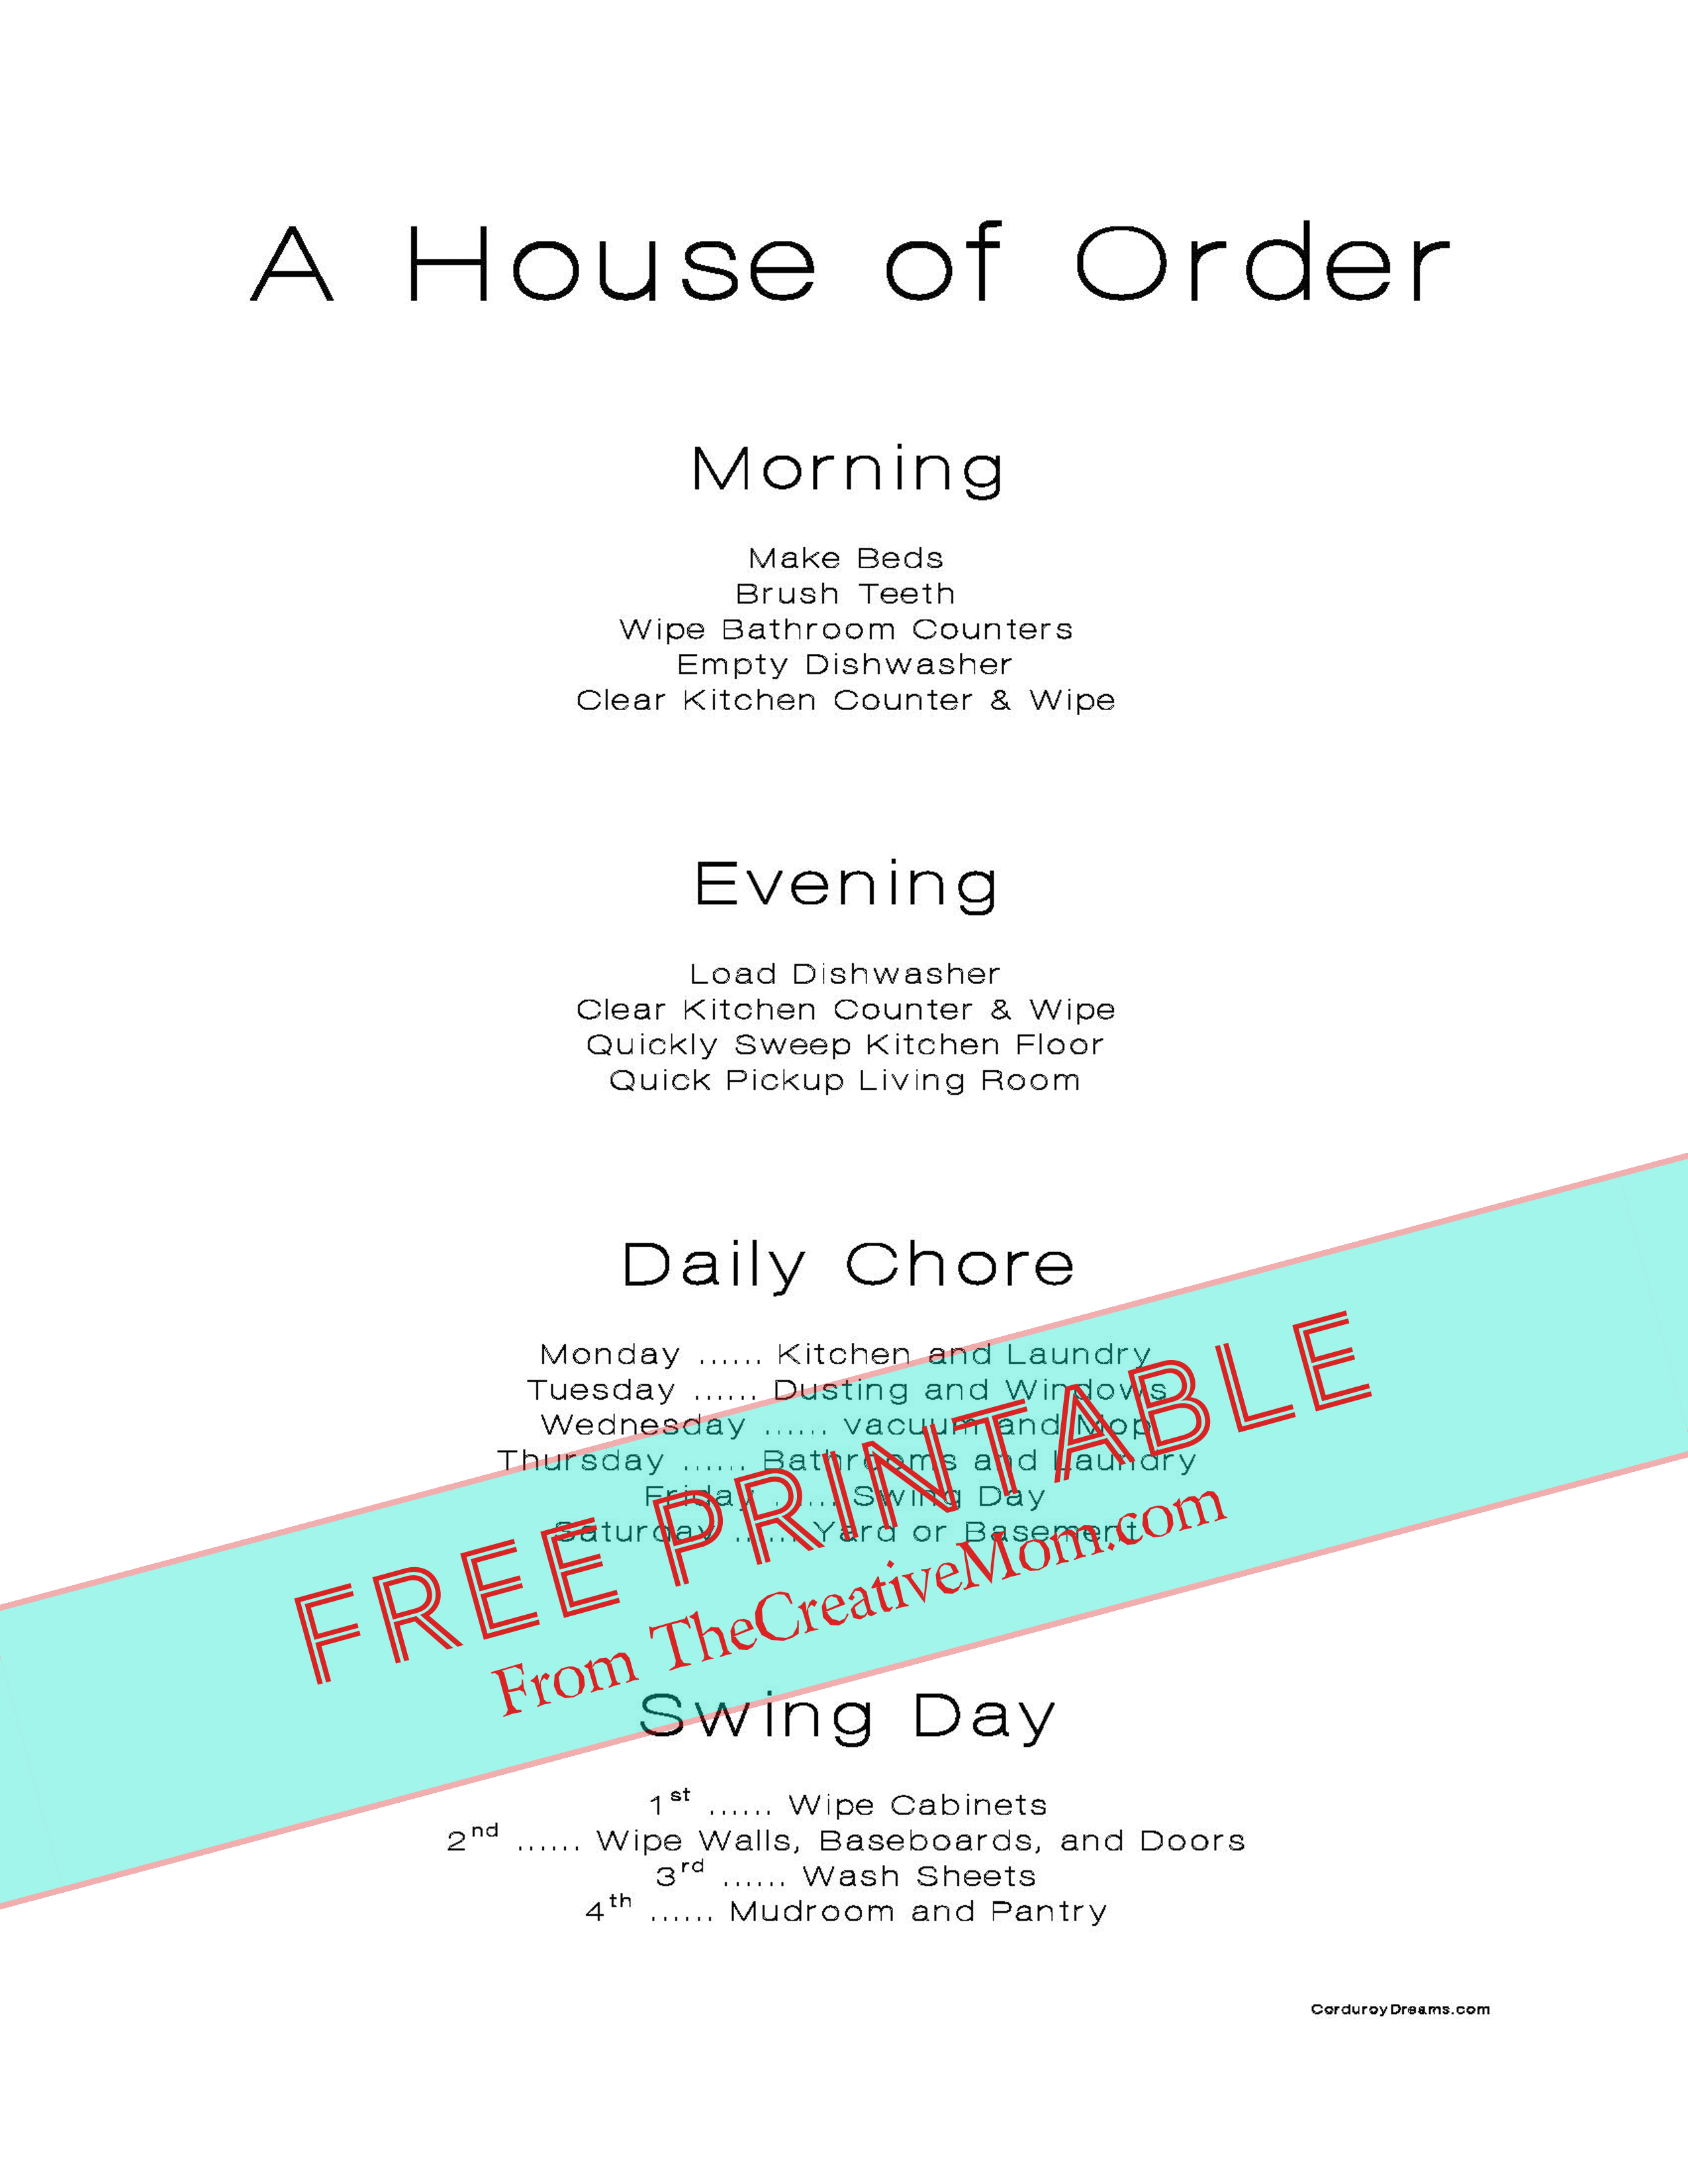 Free Printable Chore Charts (for kids and adults)